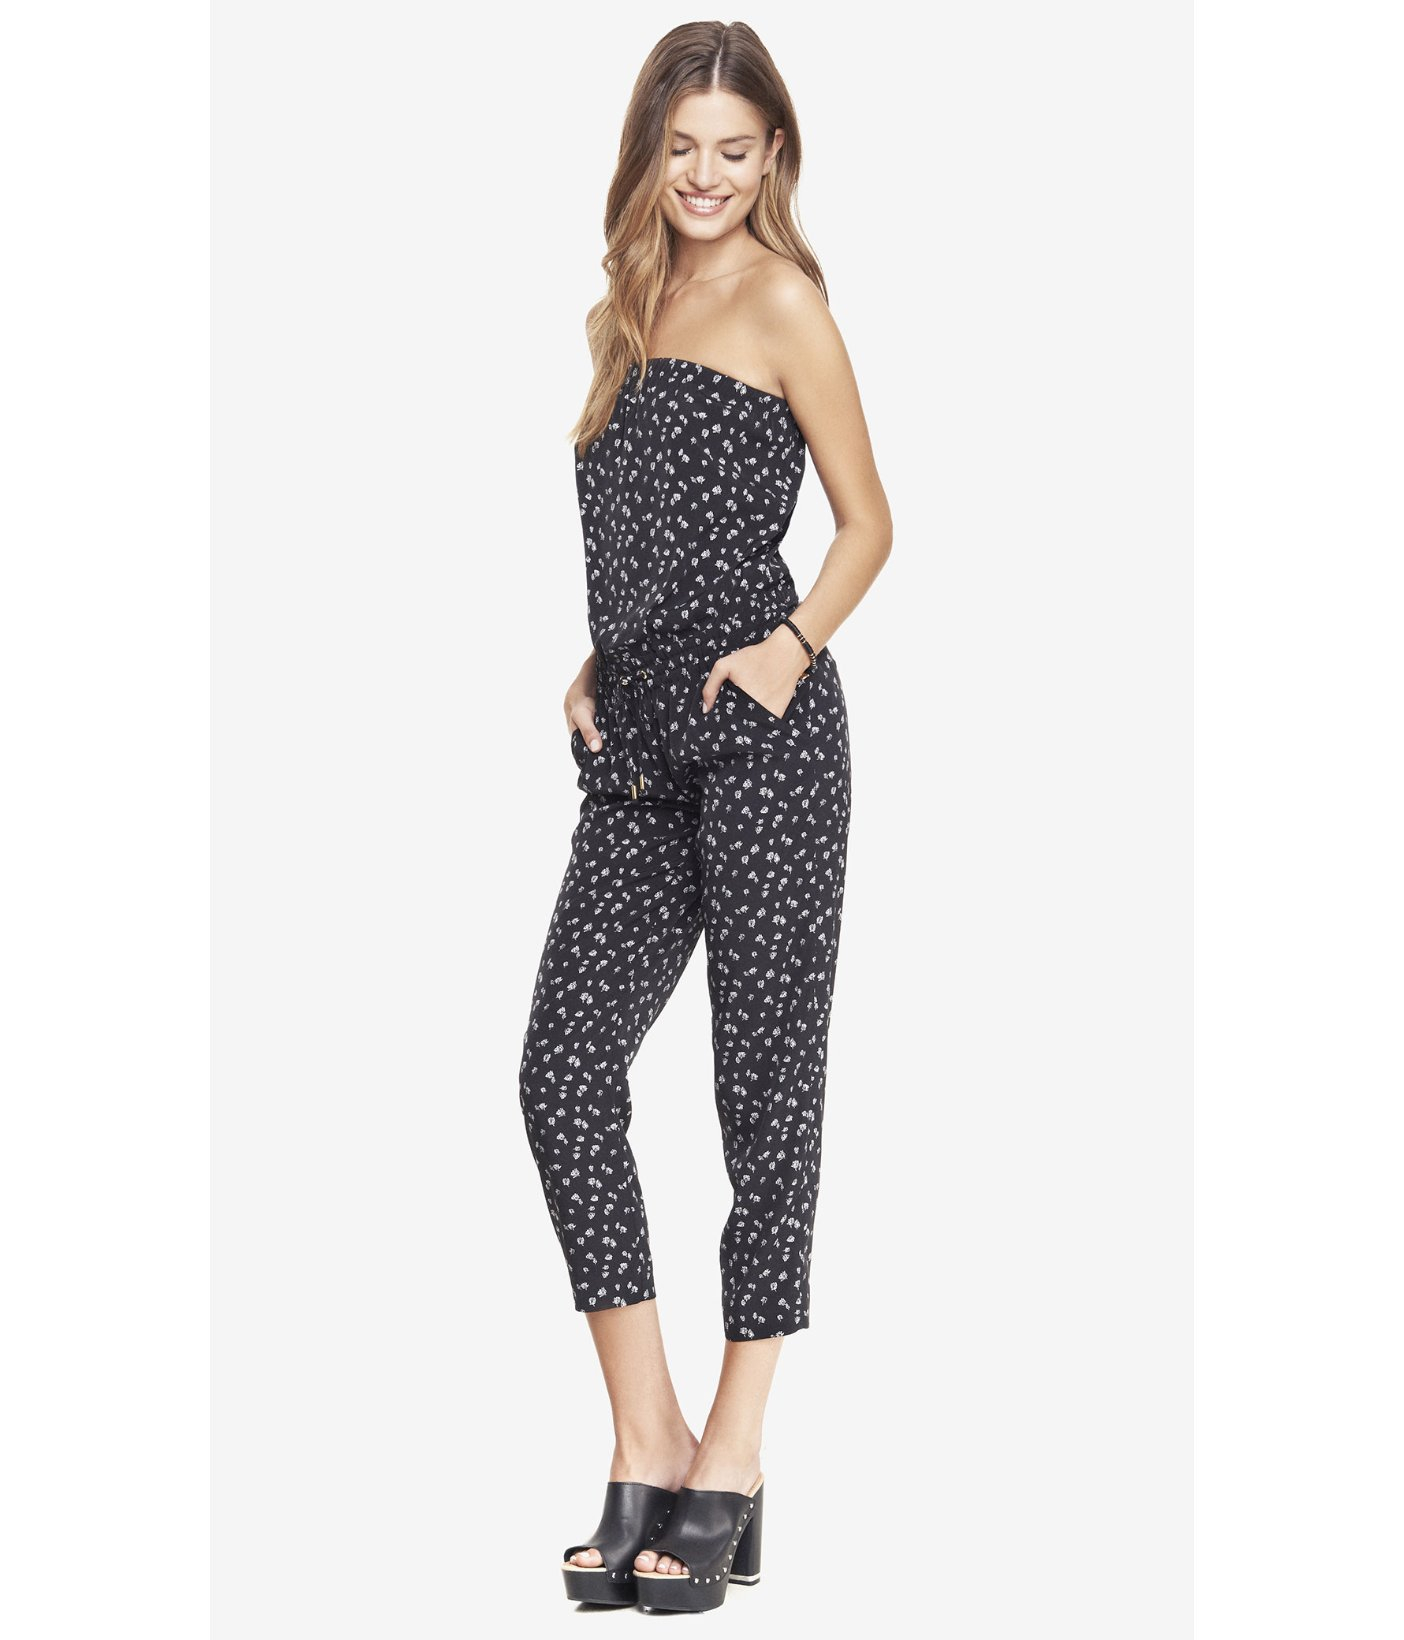 fd3cad58b50e Lyst - Express Strapless Jumpsuit - Floral Print in Black